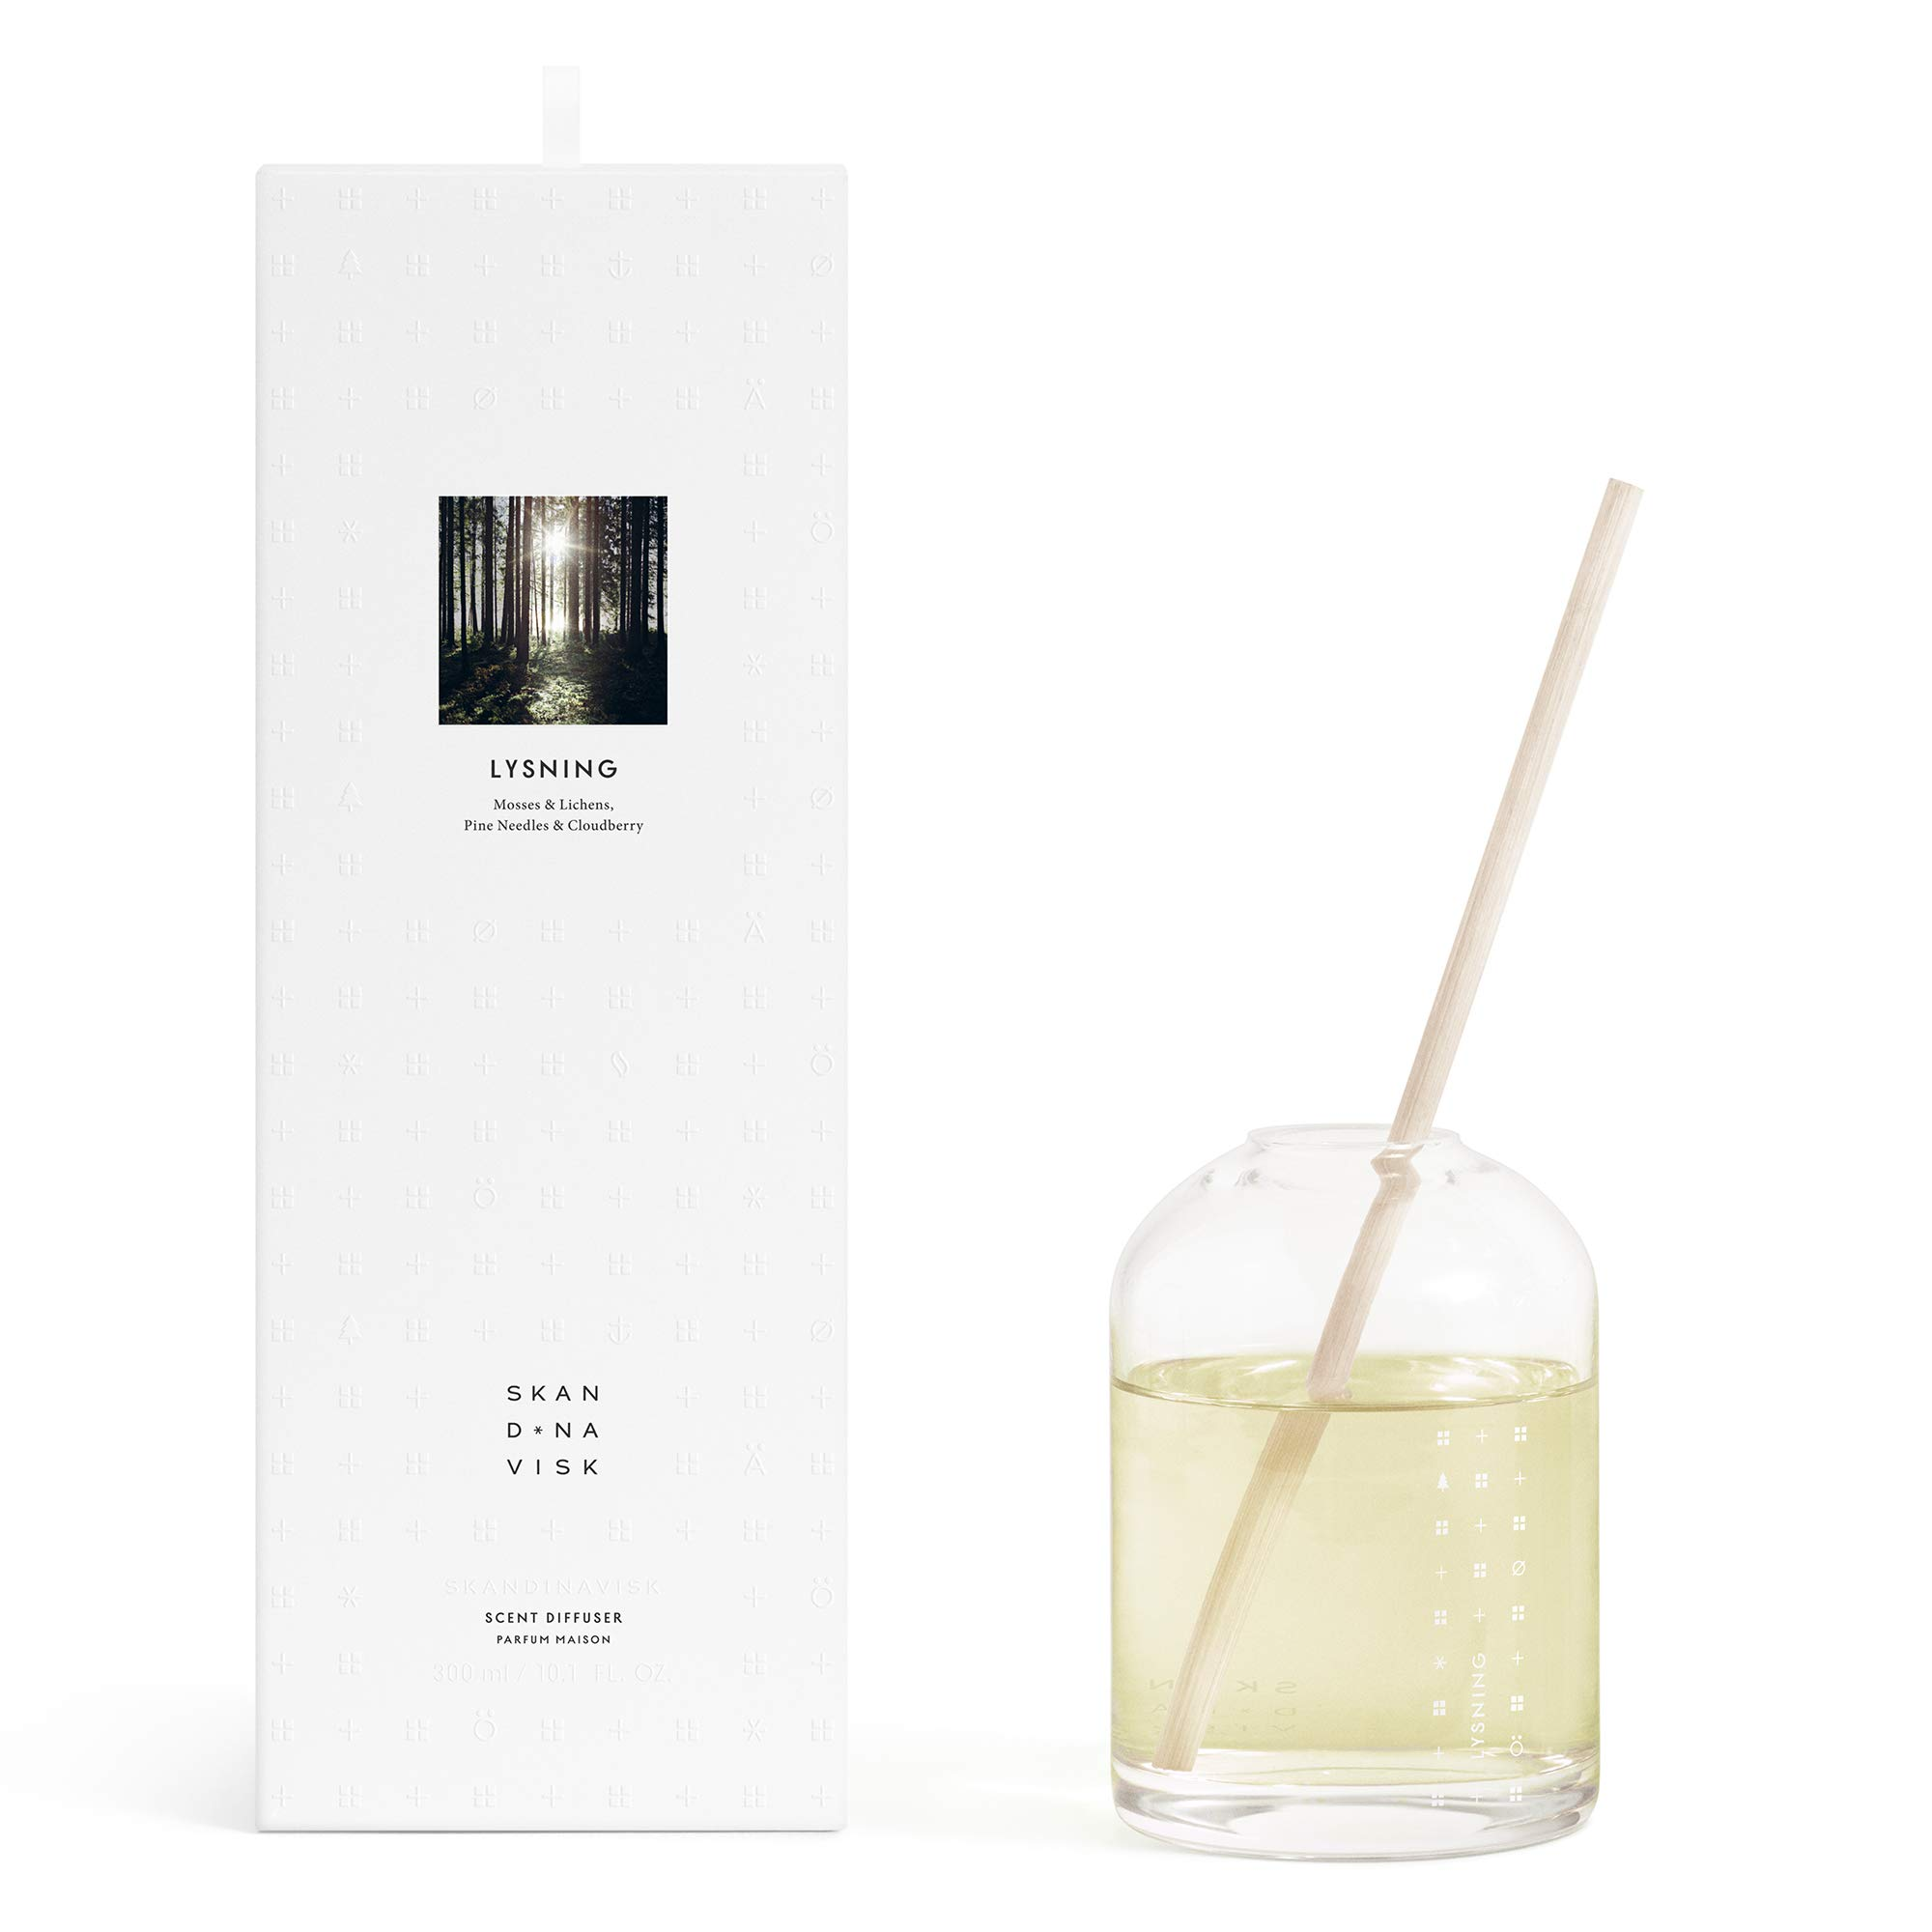 SKANDINAVISK Escapes Scent Luxury Diffuser Lysning (Forest Glade) - Mosses, Lichens, Pine Needles & Cloudberry - 10 Fl Oz (4 Months) by SKAN D · NA VISK